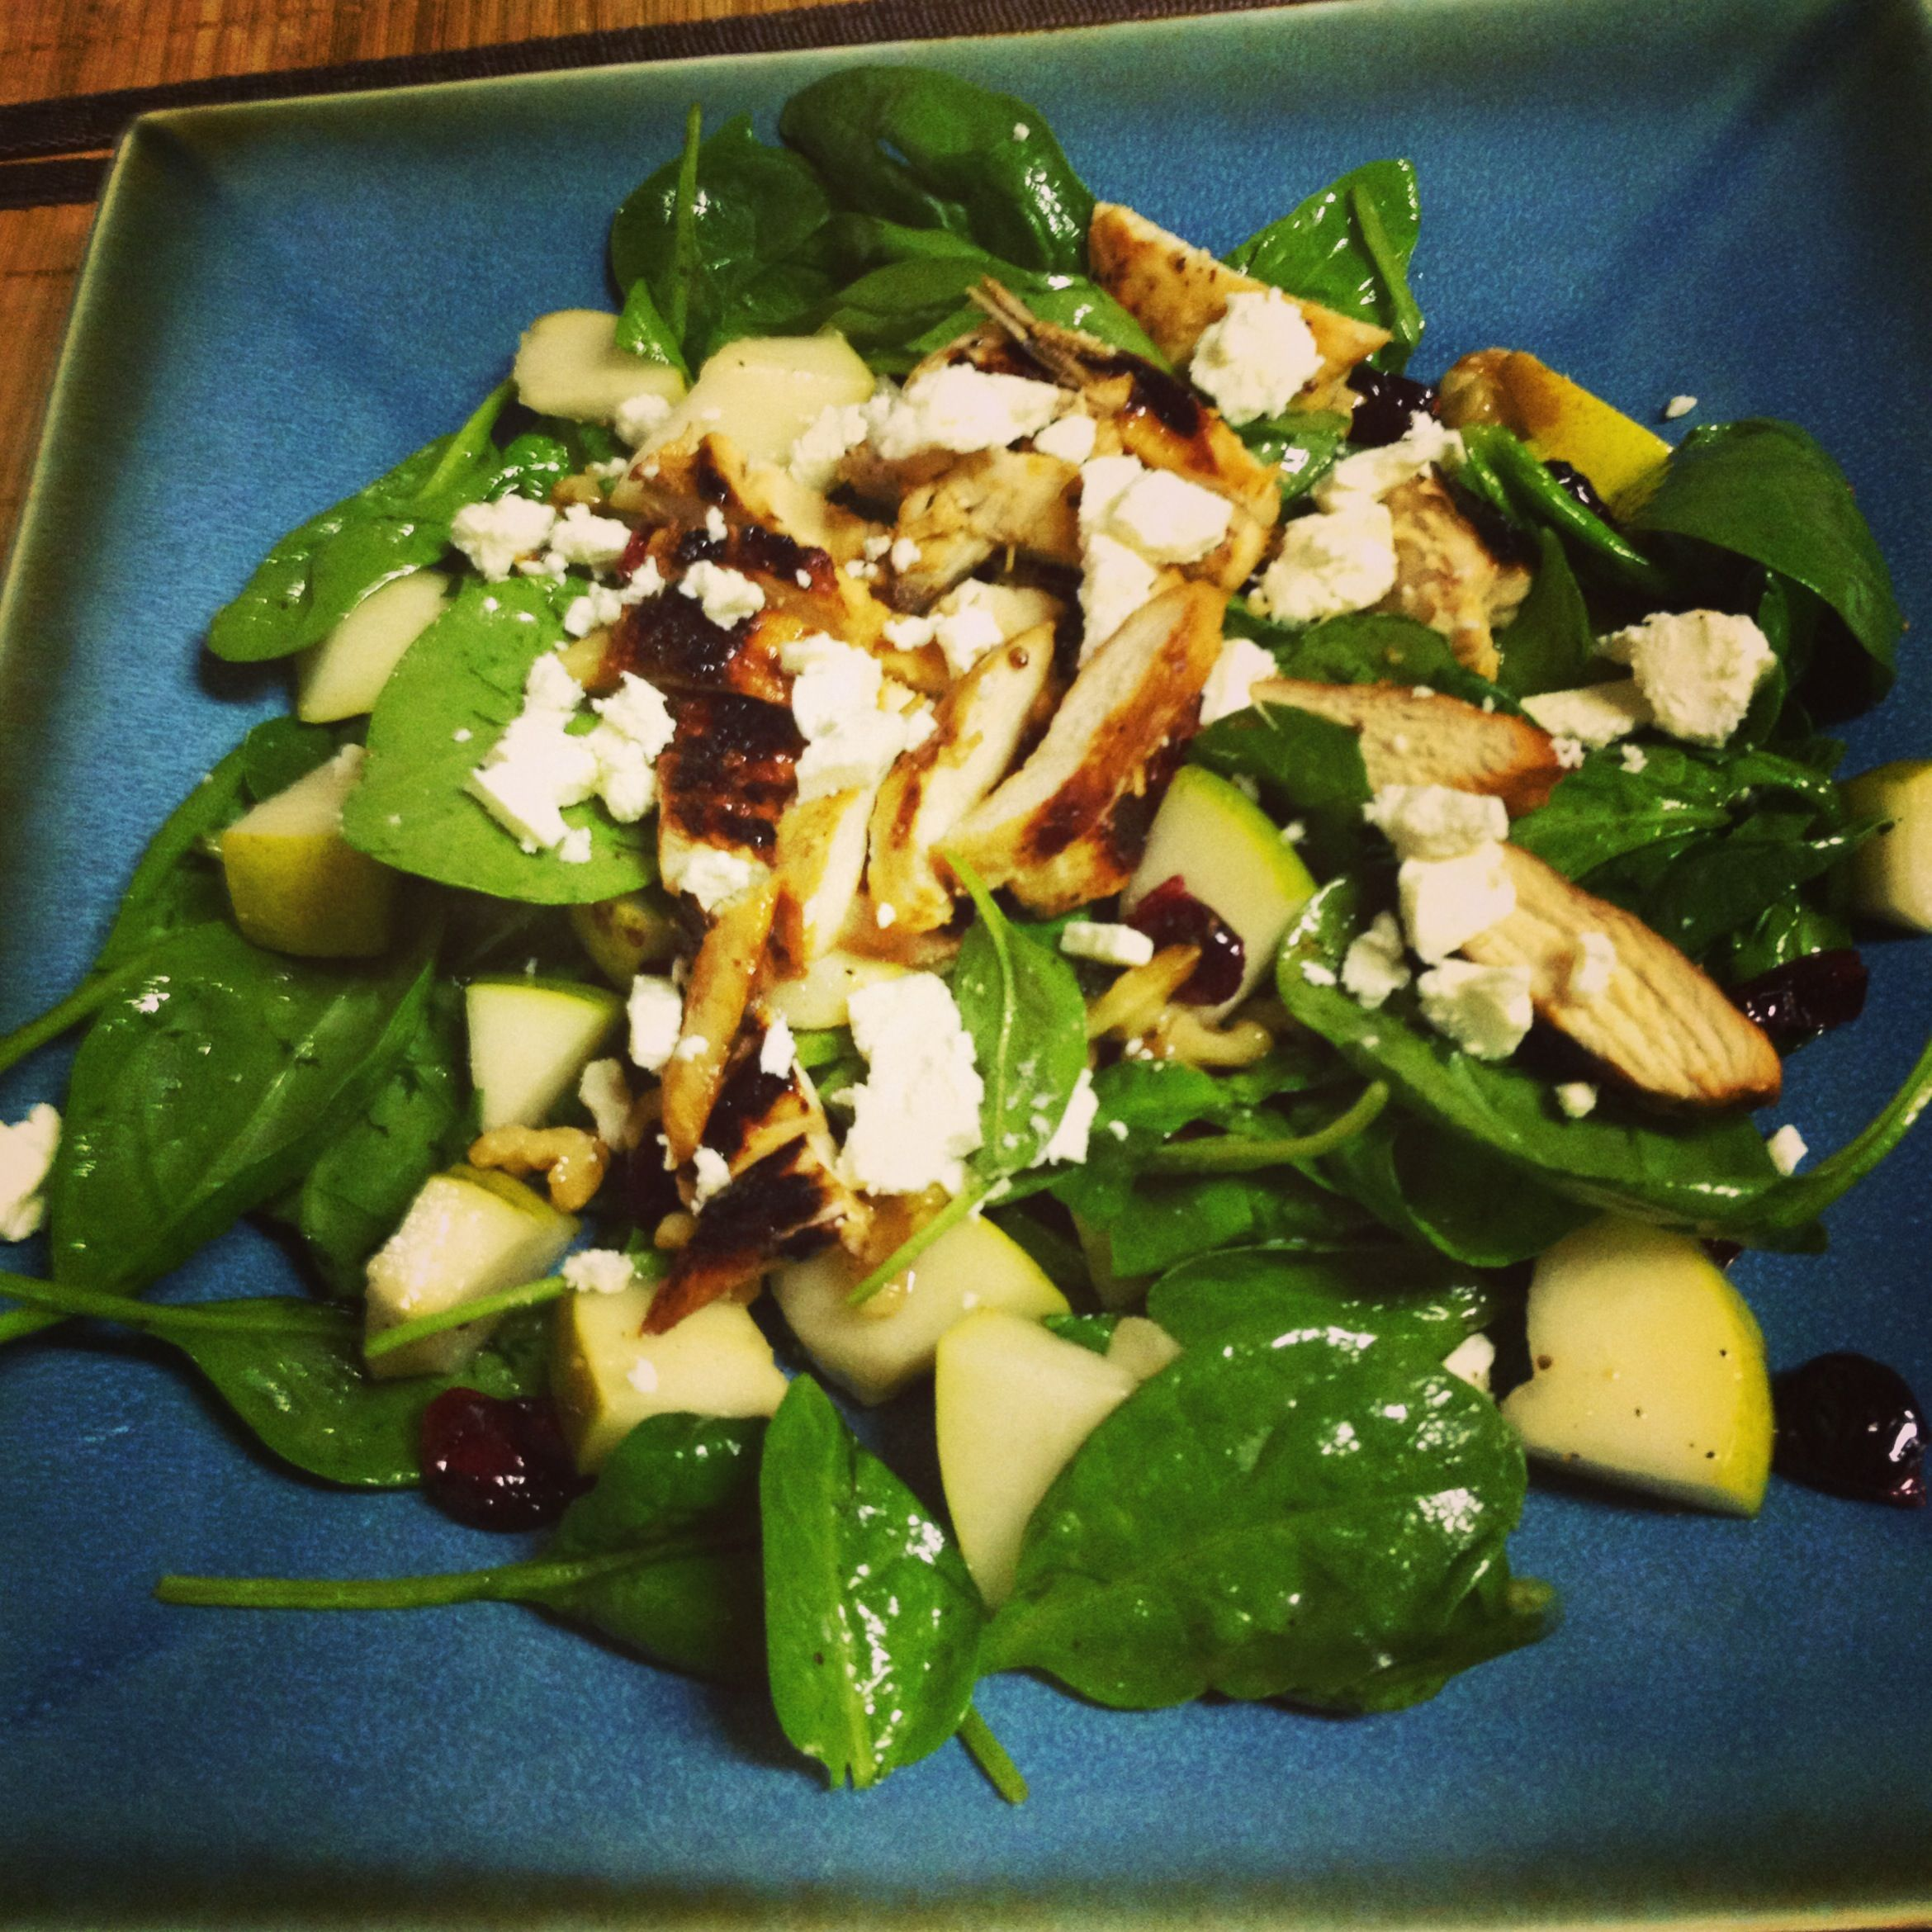 Cranberries, Walnuts, Feta, Pears, Spinach, And Pam Seated